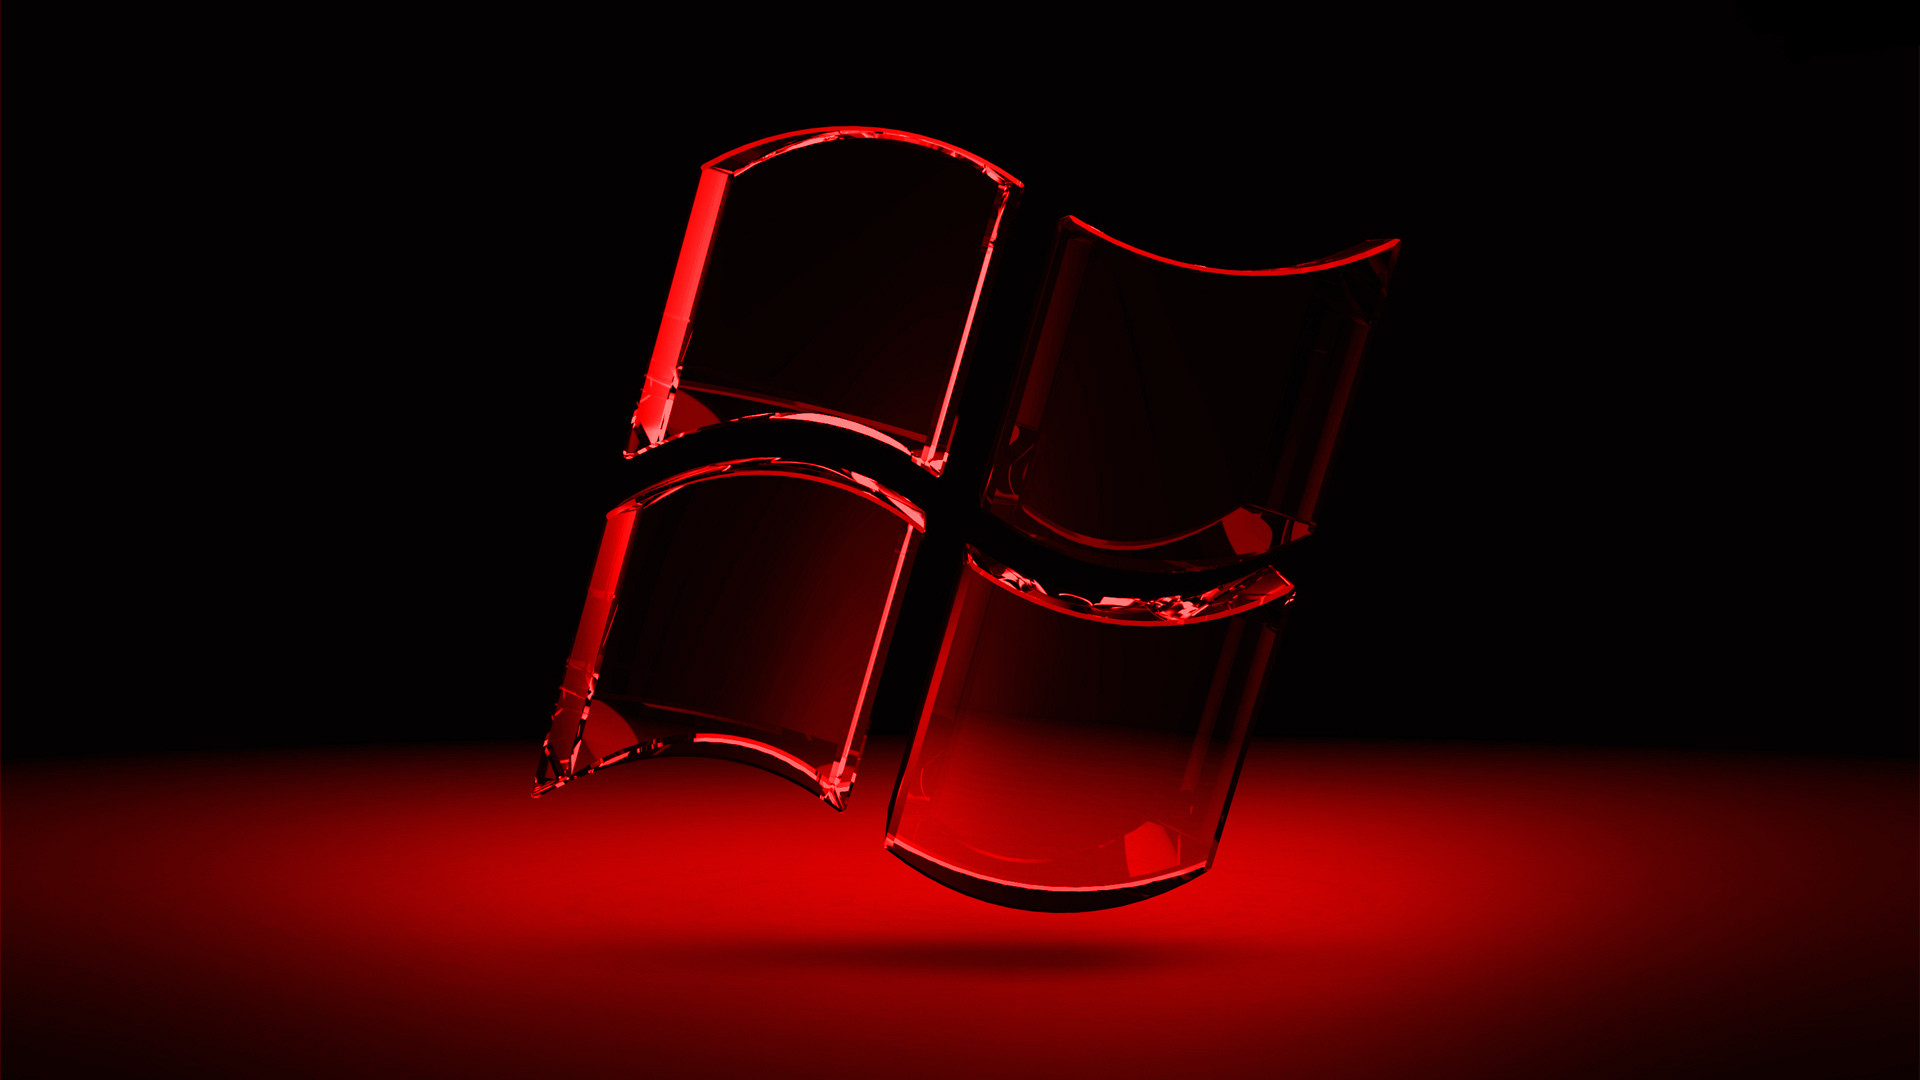 Windows Red Wallpaper PC Windows Red Wallpapers in Magnificent | HD  Wallpapers | Pinterest | Wallpaper and Wallpaper pc